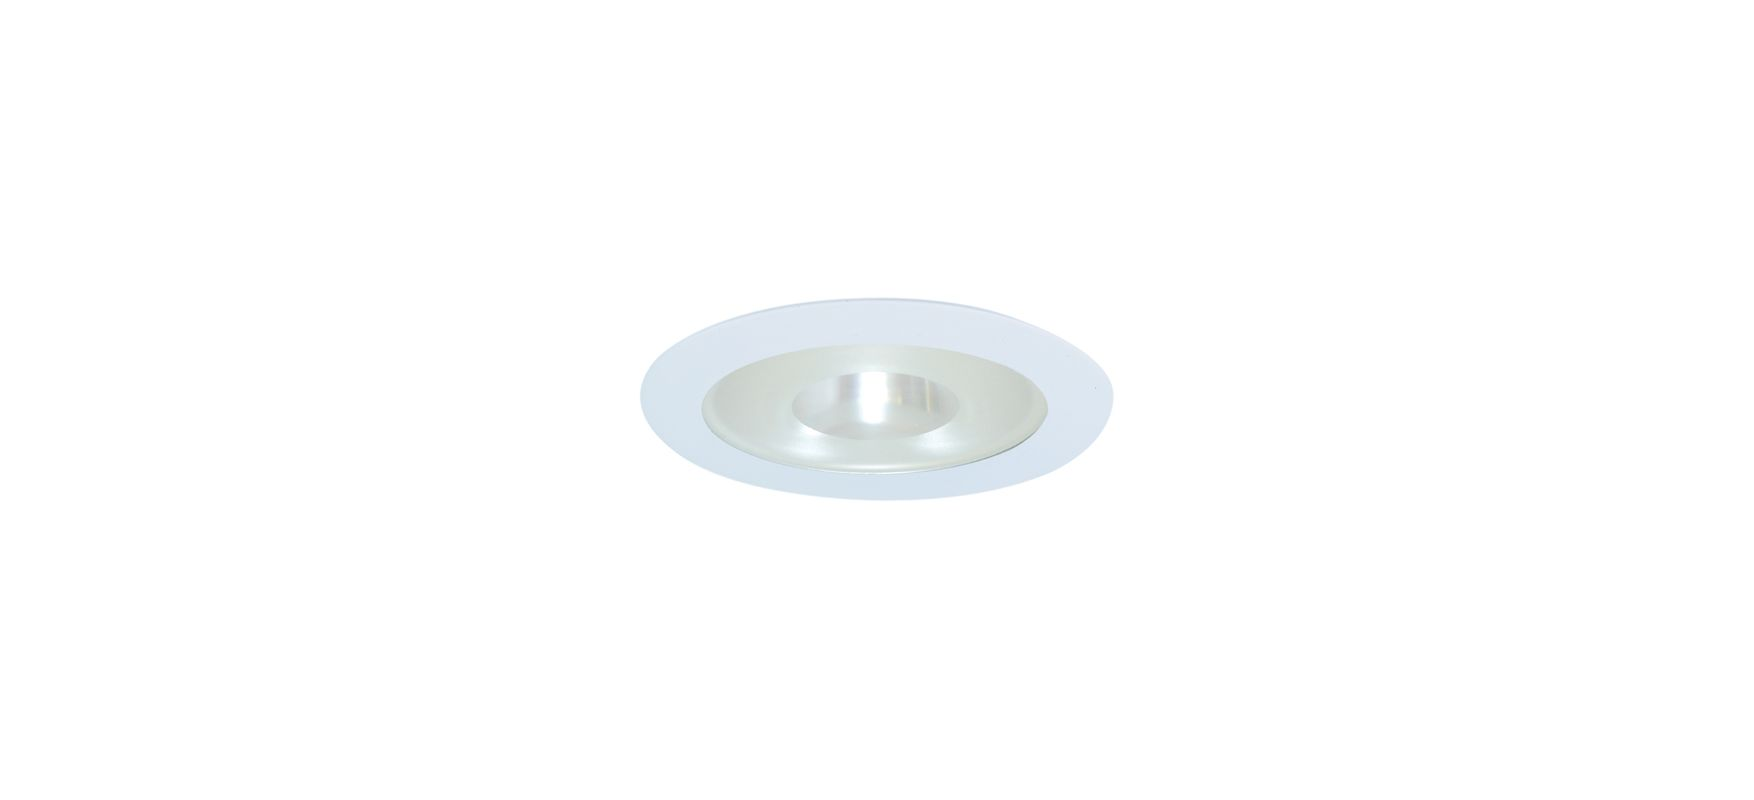 "Elco EL915SH 4"" White Lexan Shower Trim with Frosted Pinhole Glass"